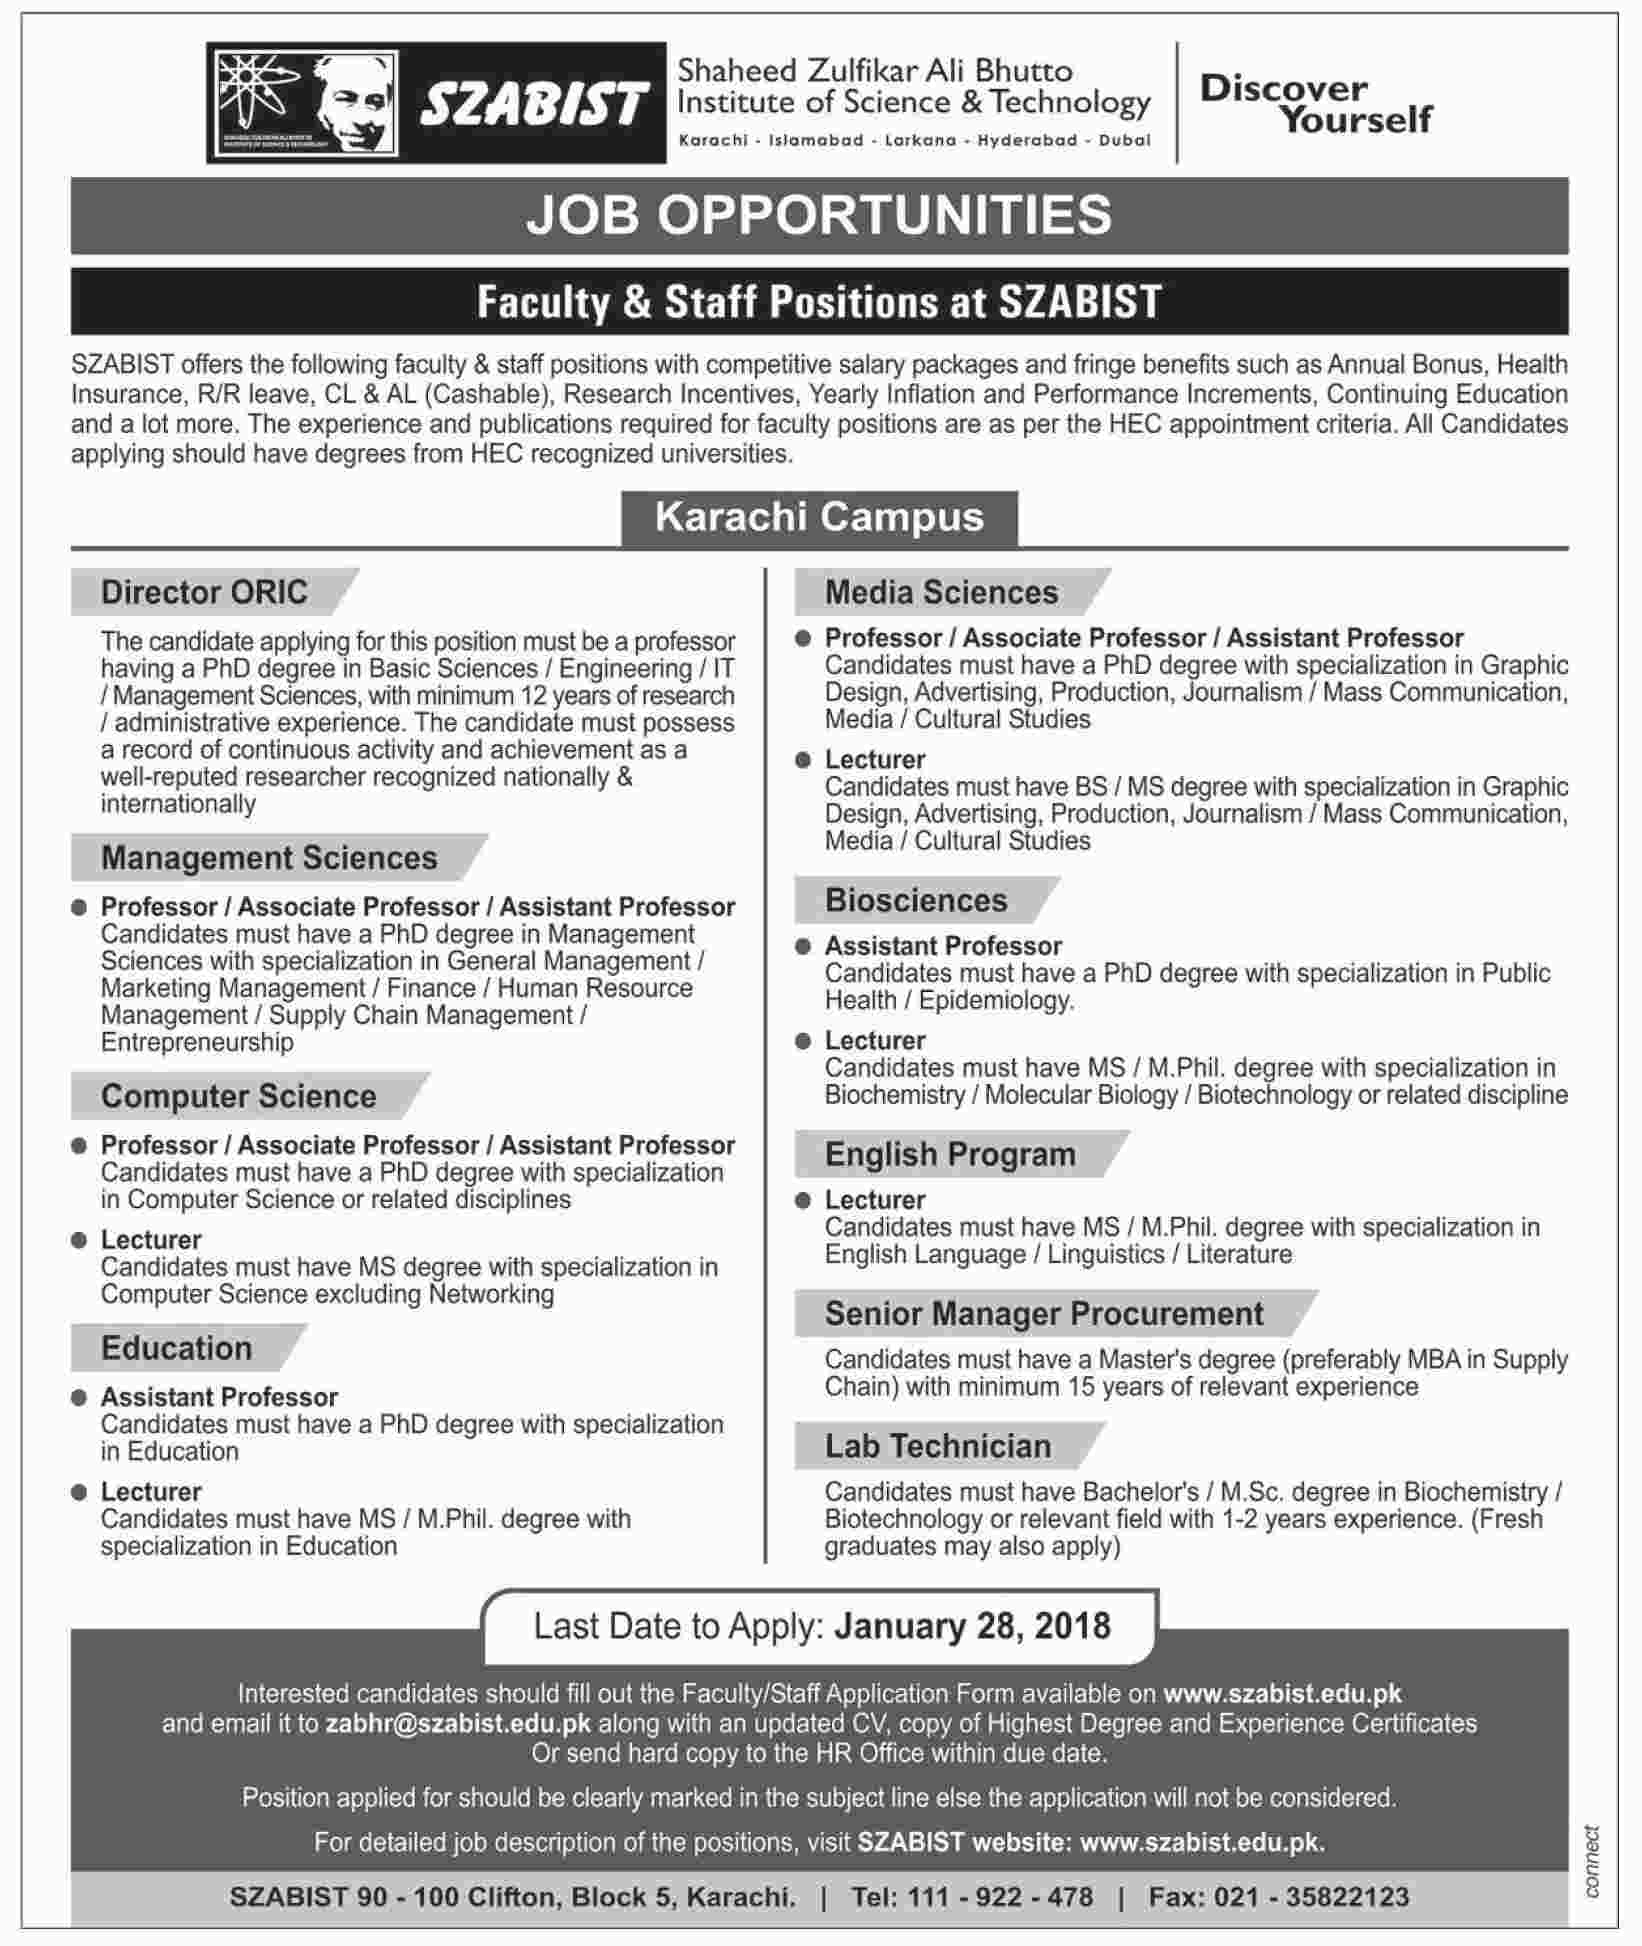 Jobs In Shaheed Zulfiqar Ali Bhutto Institute Of Science & Technology 15 Jan 2018